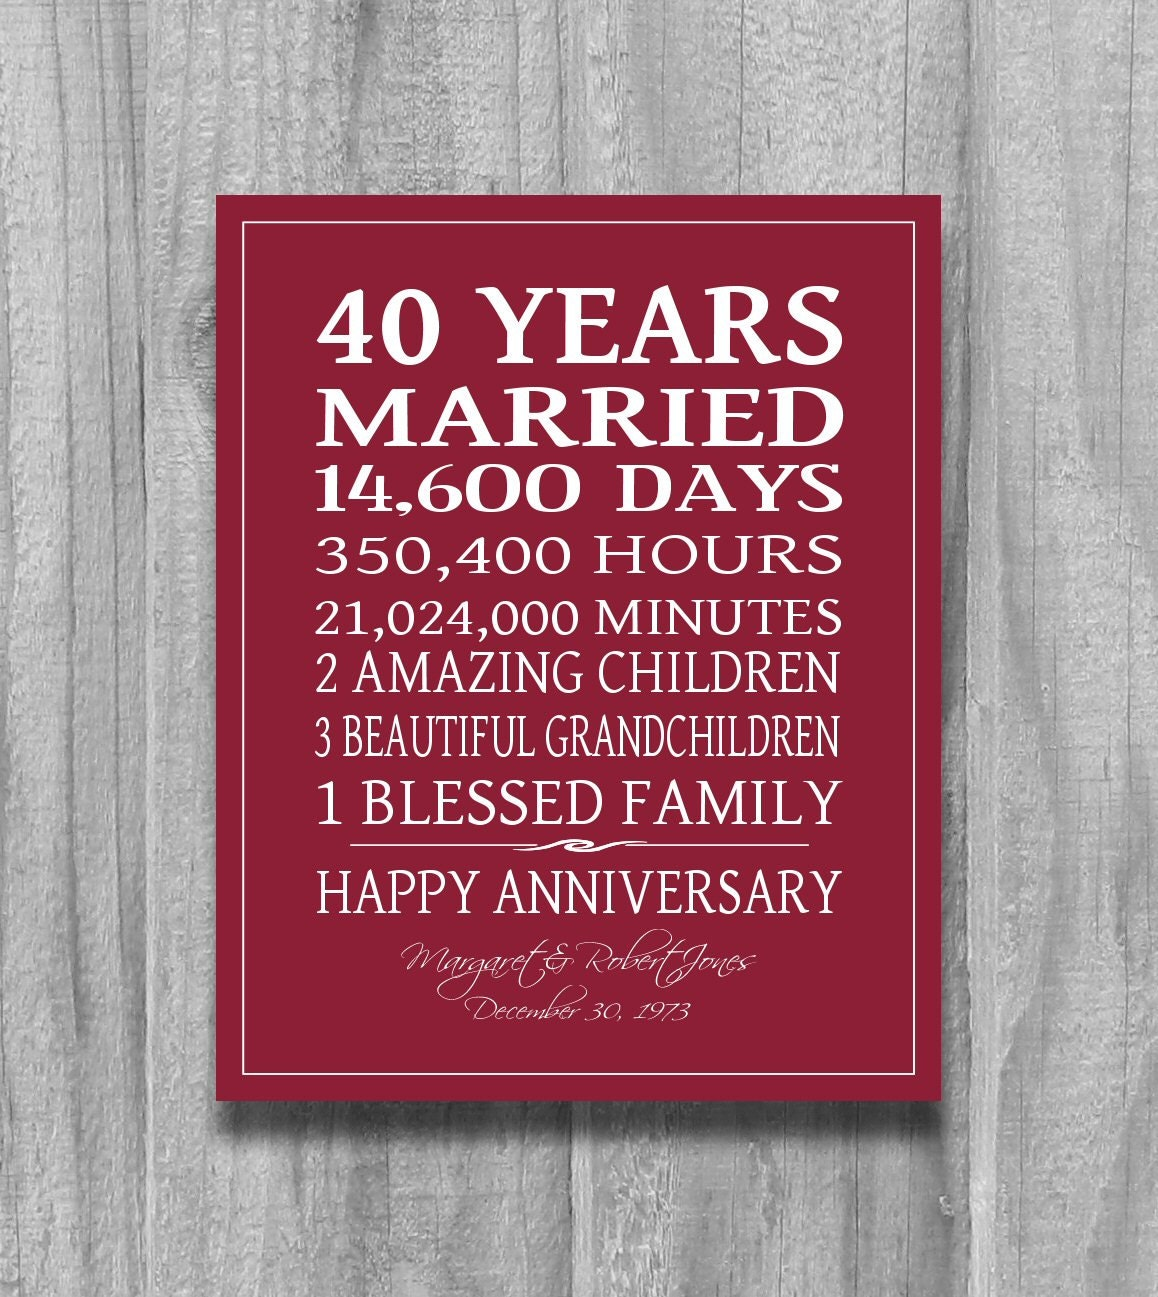 First Anniversary Gifts For A Business | Wedding Anniversary Gift Ideas